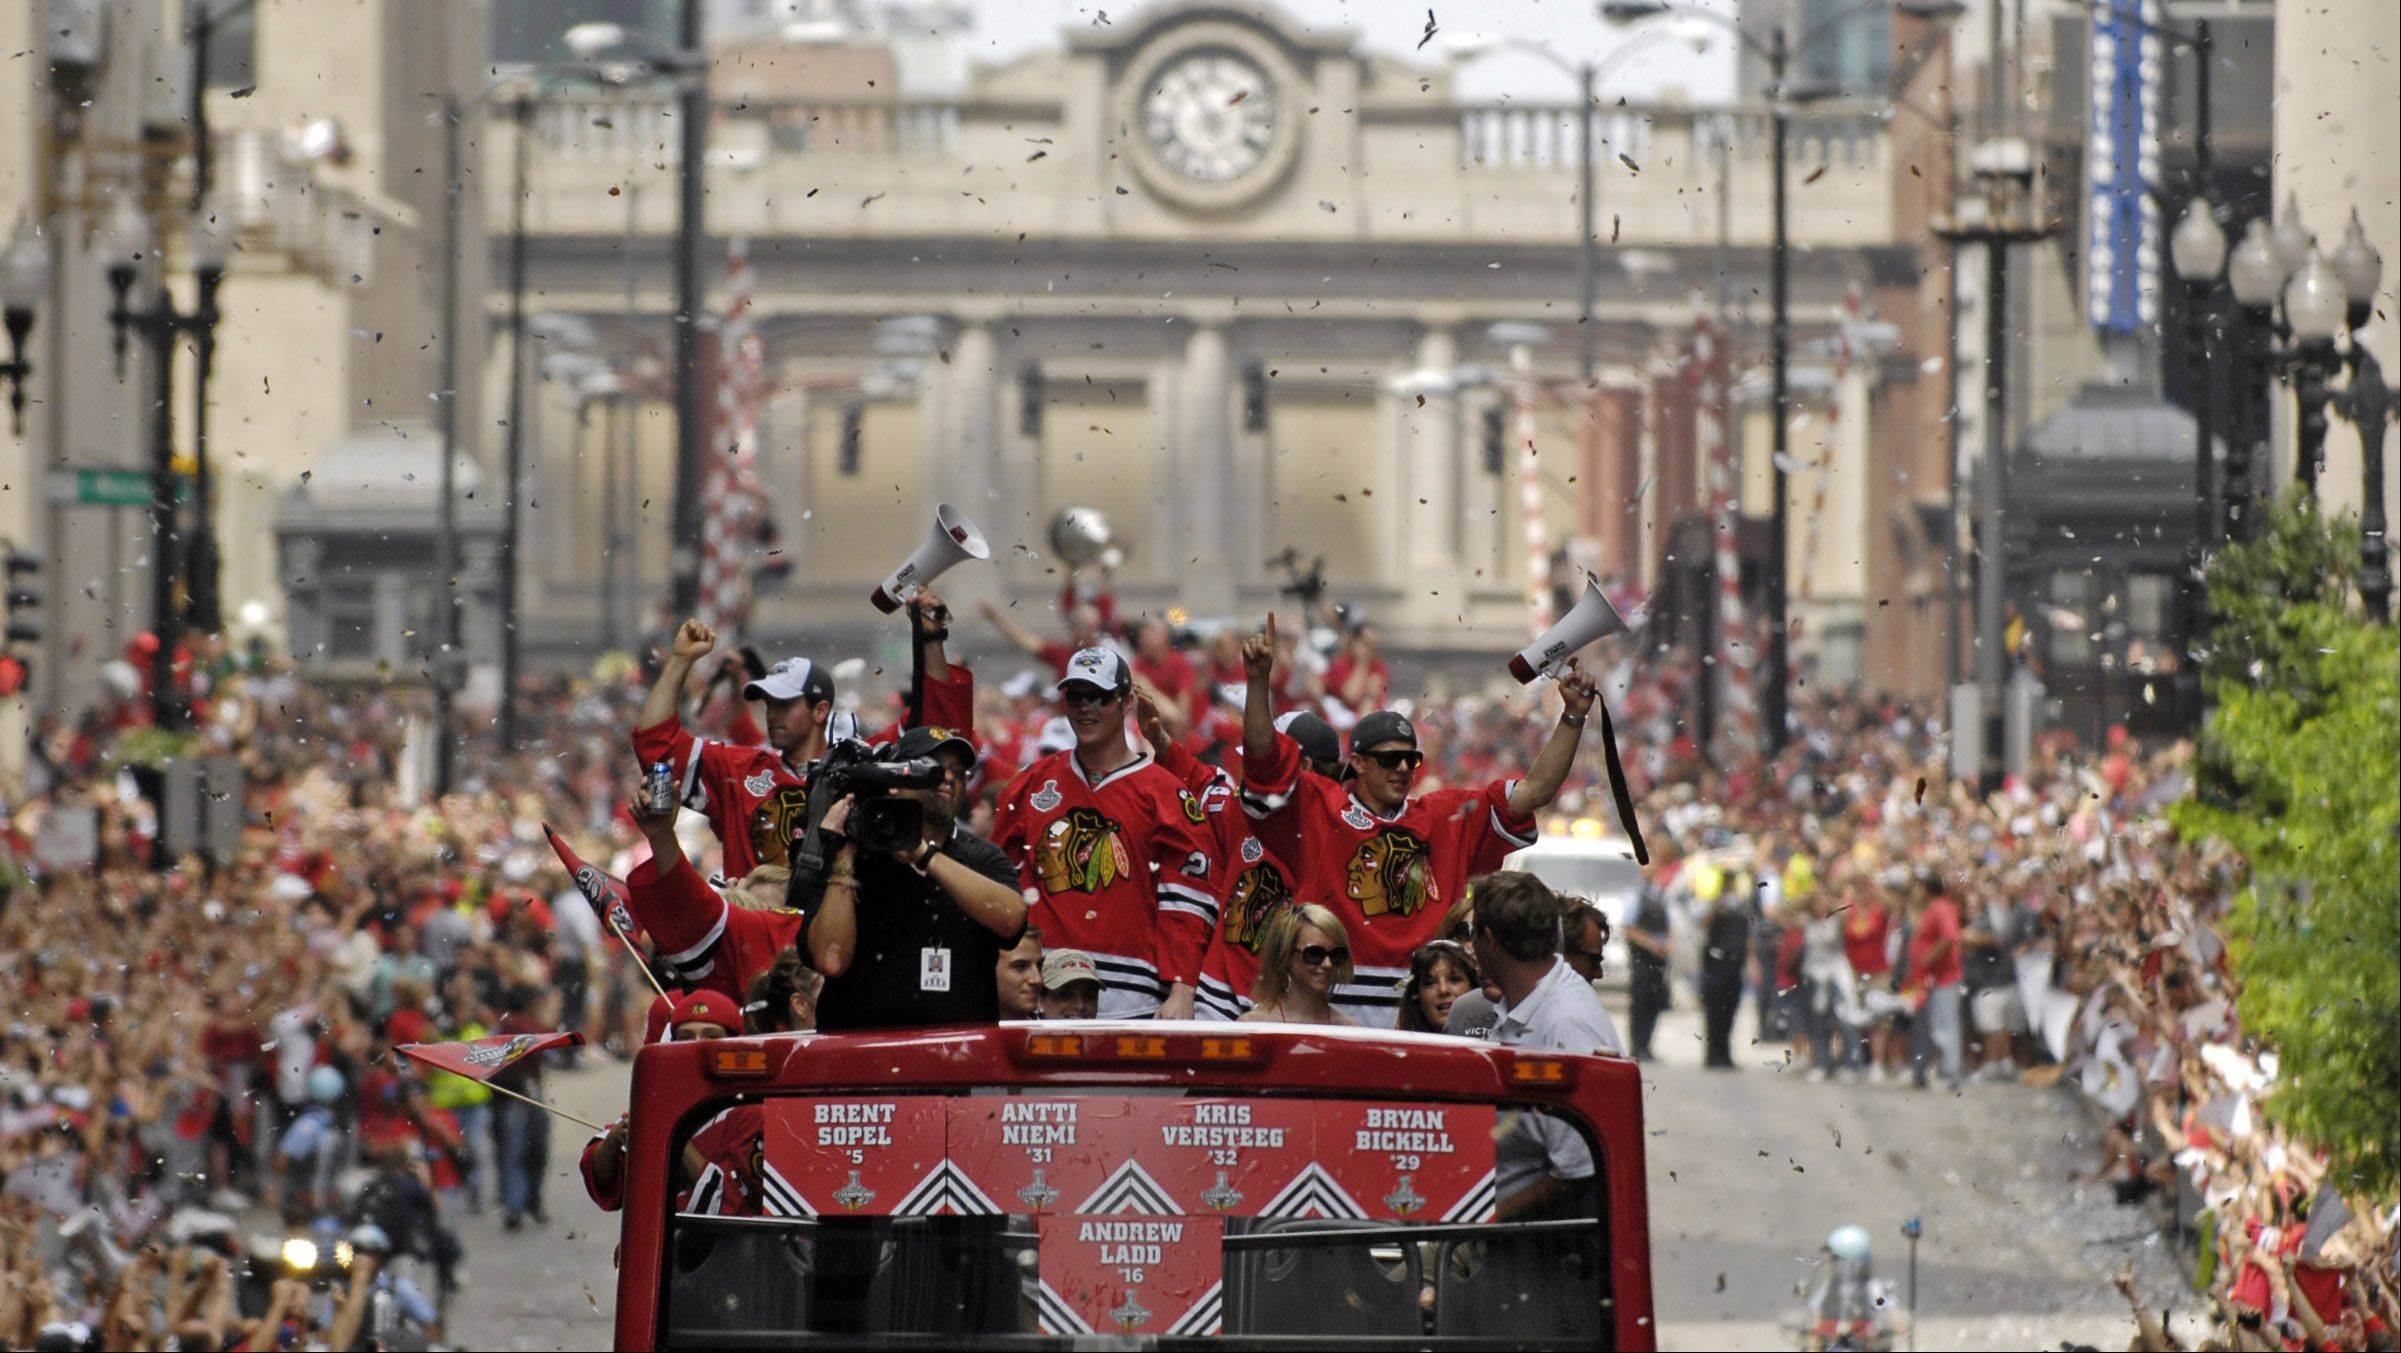 Hawks set parade route, security will be tight